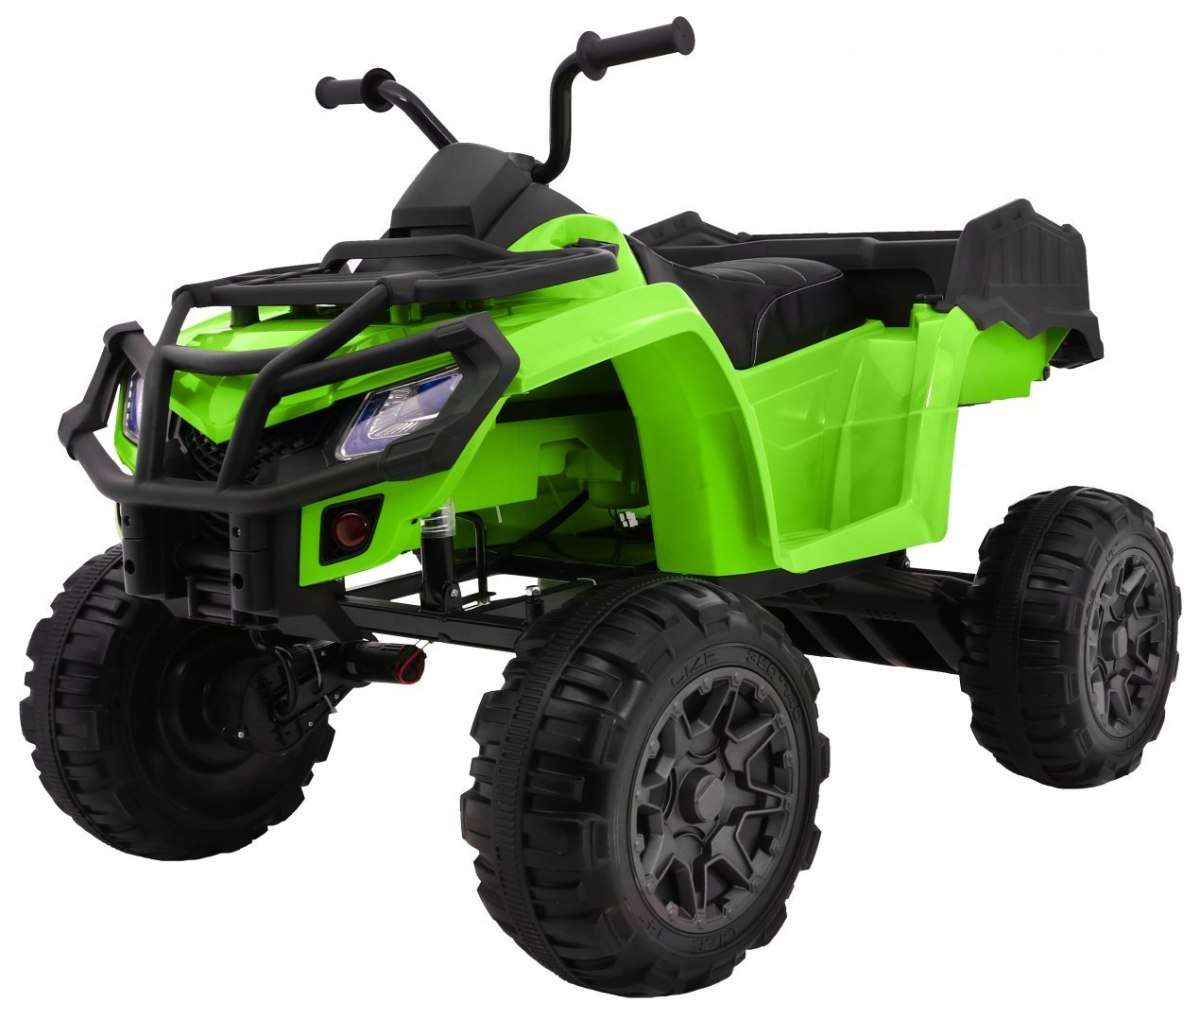 Štvorkolka All-terrain Quad vehicle 4 x 4 zelená